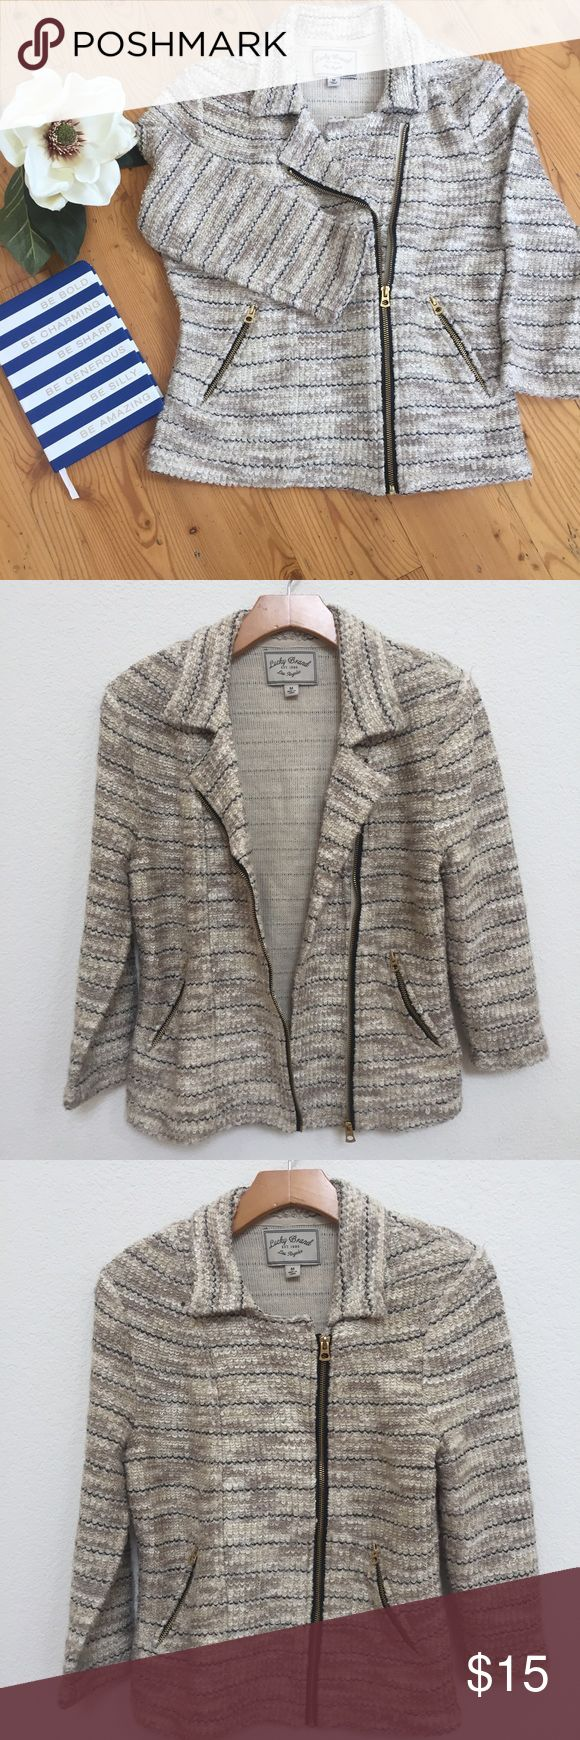 Lucky Brand Jacket Sz M Pre Owned Lucky Brand Jacket Sz M, good condition. Front zipper , motorcycle style jacket , length 23, chest 18. Lucky Brand Jackets & Coats Blazers